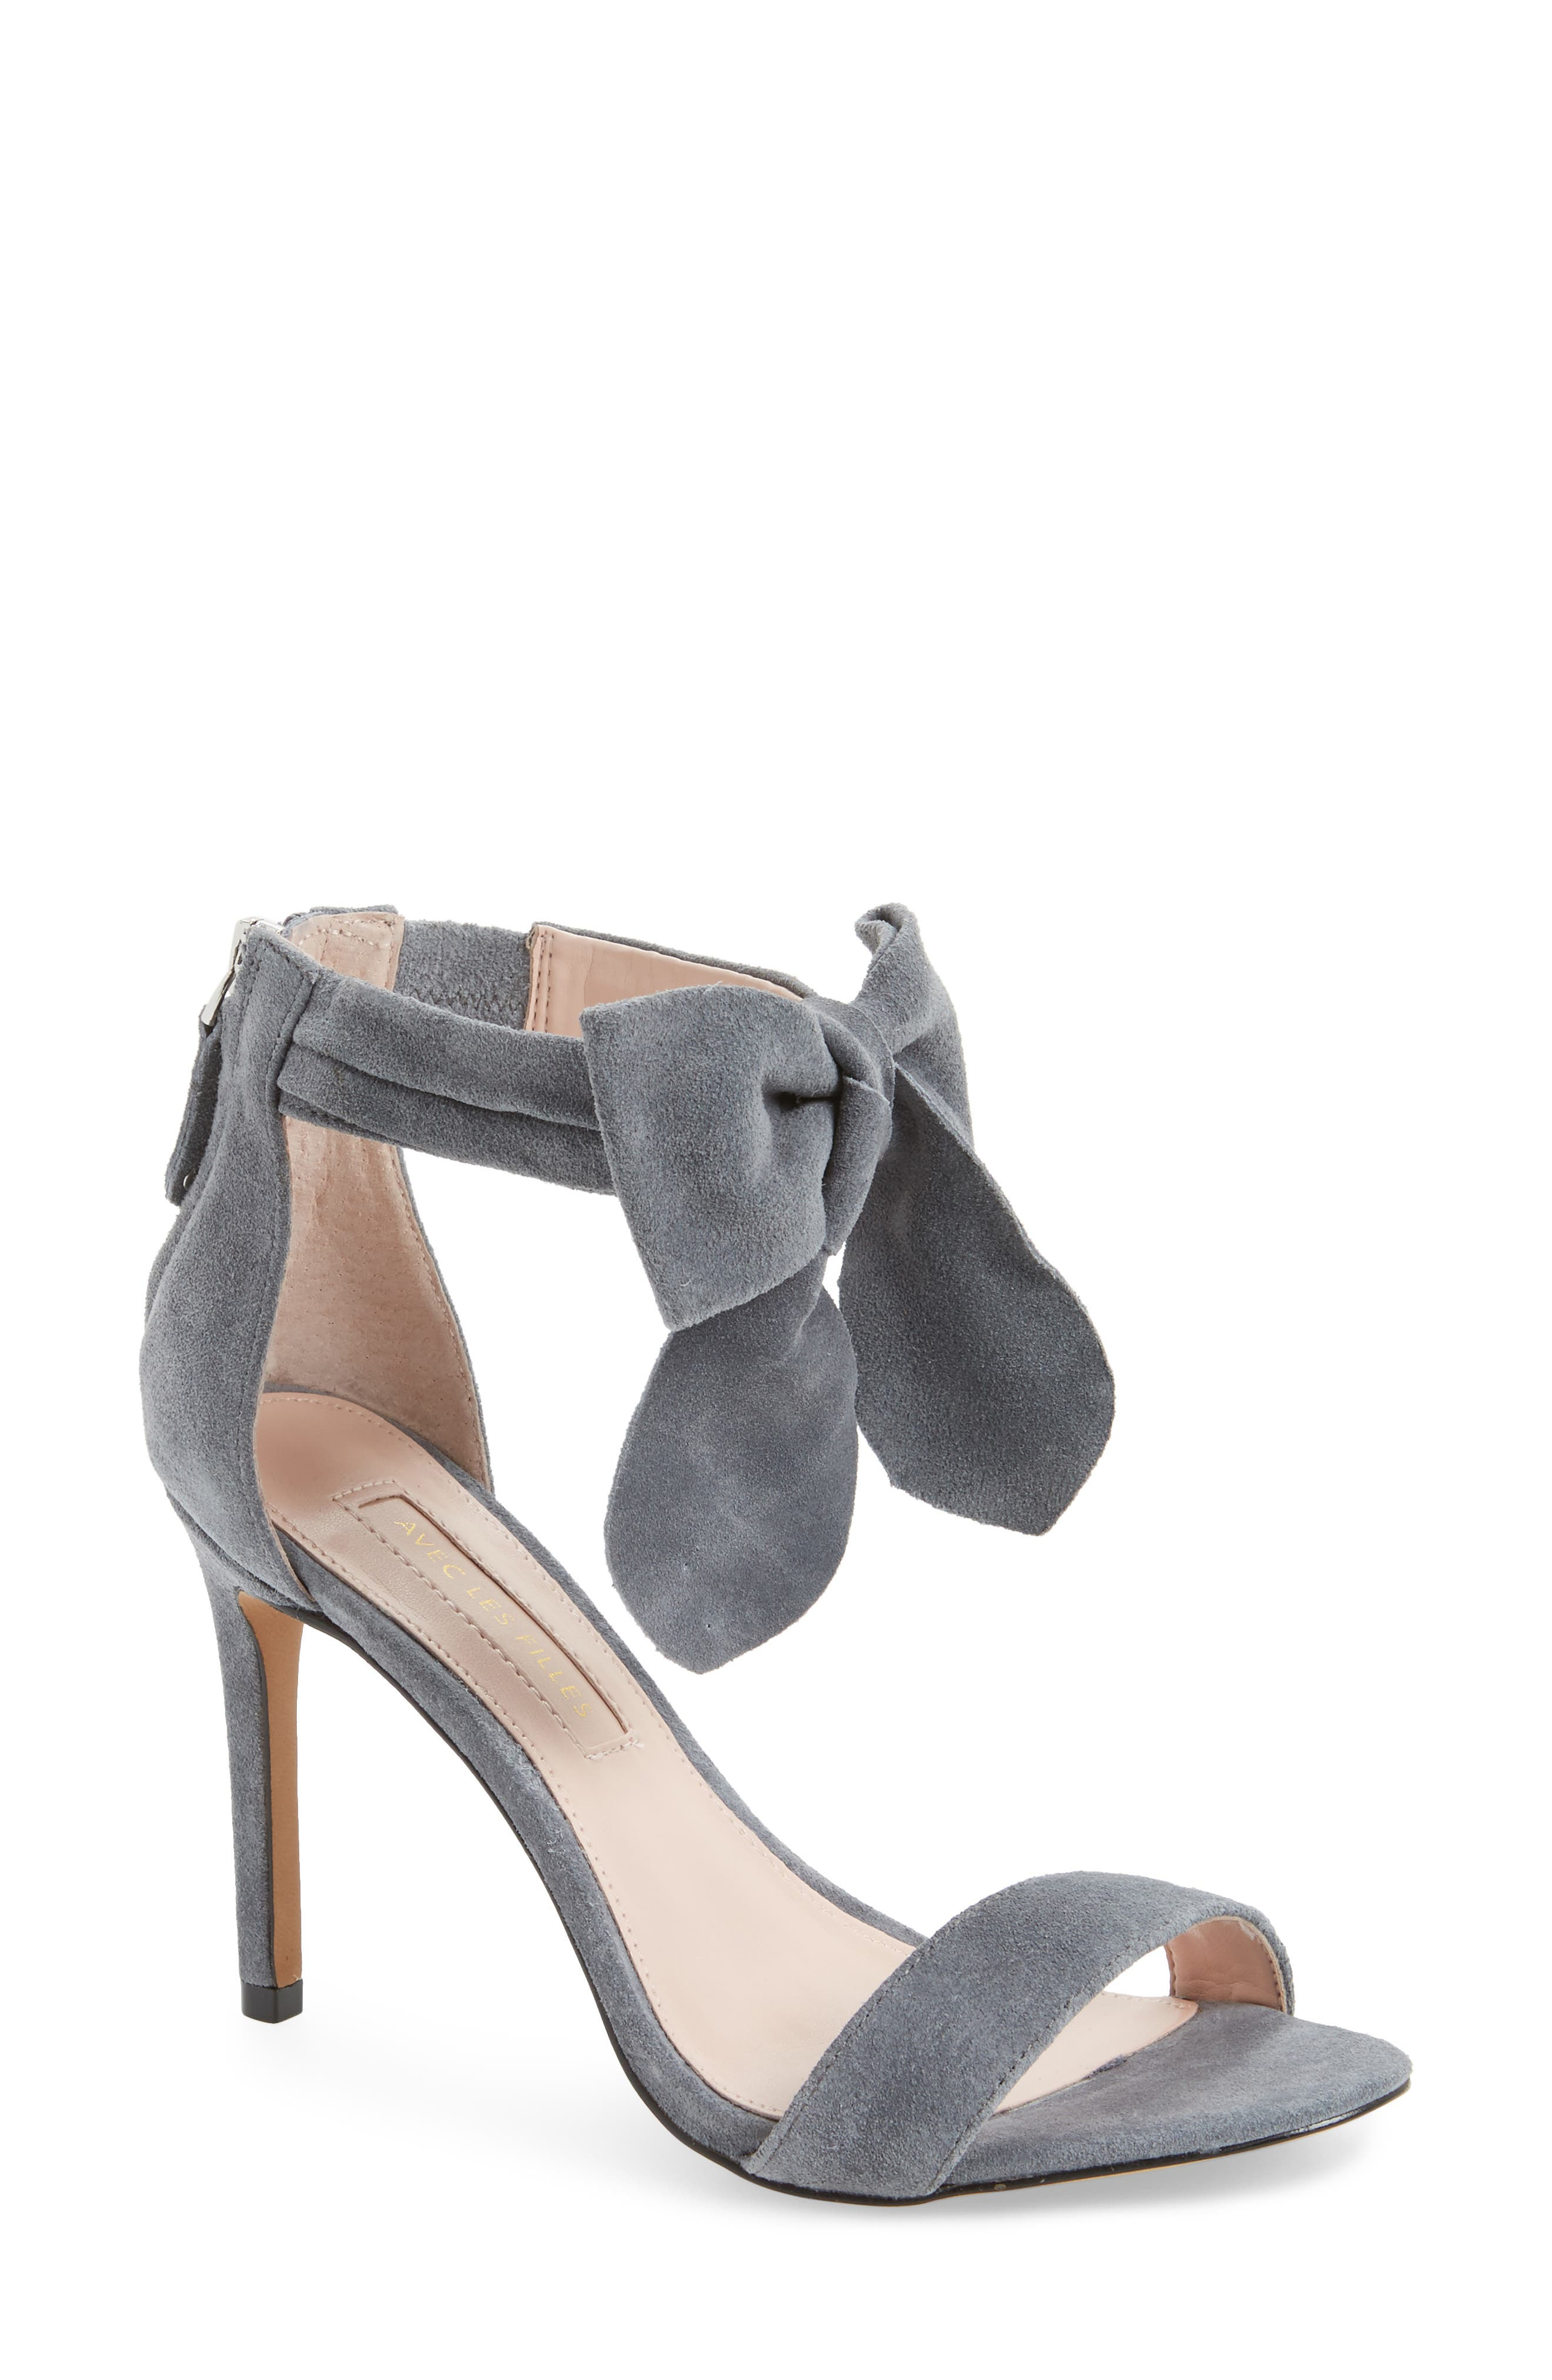 Jax Ankle Bow Pump,                             Main thumbnail 1, color,                             Grey Suede